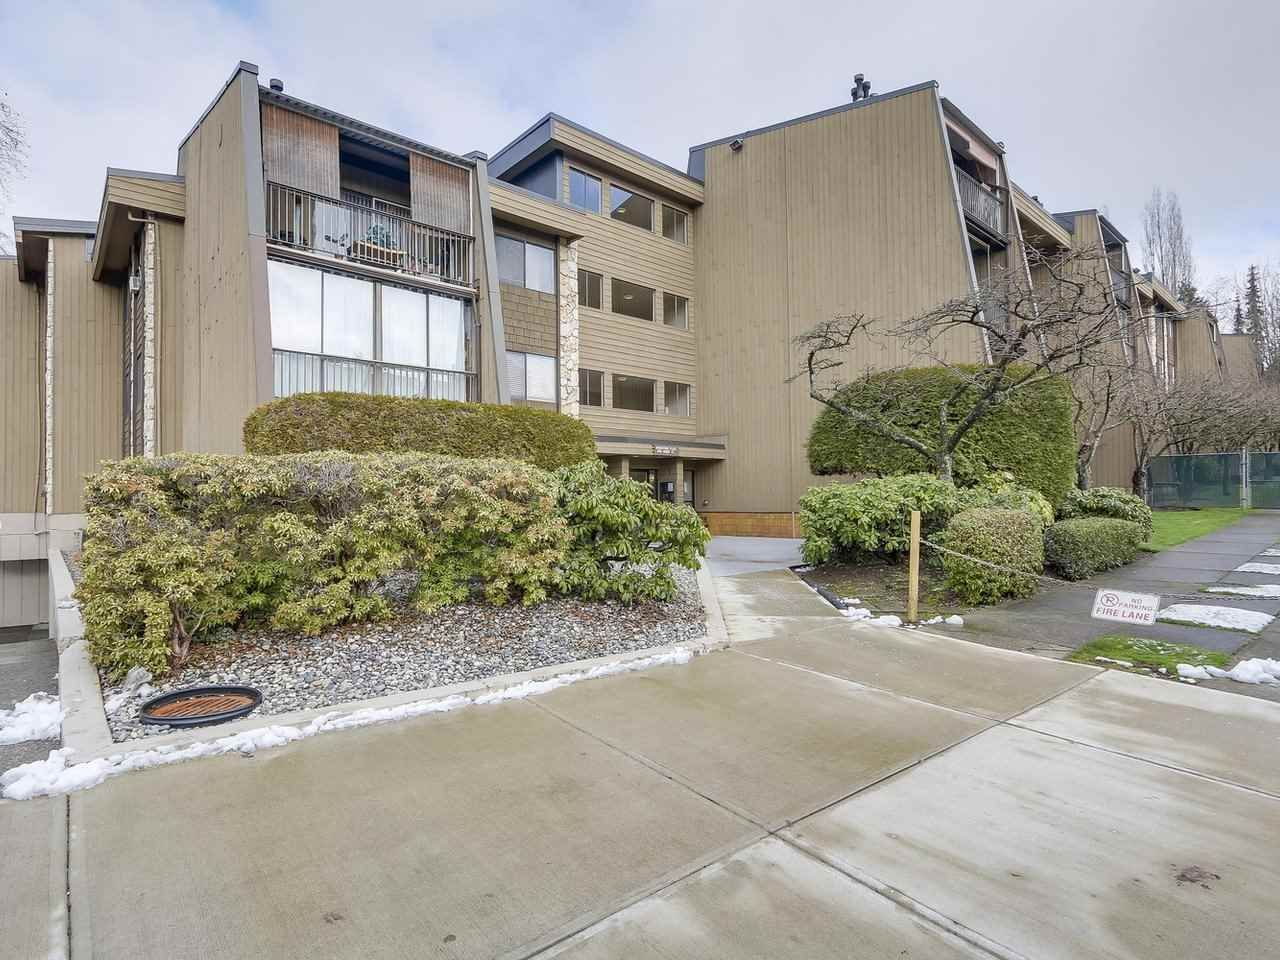 """Main Photo: 318 9101 HORNE Street in Burnaby: Government Road Condo for sale in """"Woodstone Place"""" (Burnaby North)  : MLS®# R2239730"""